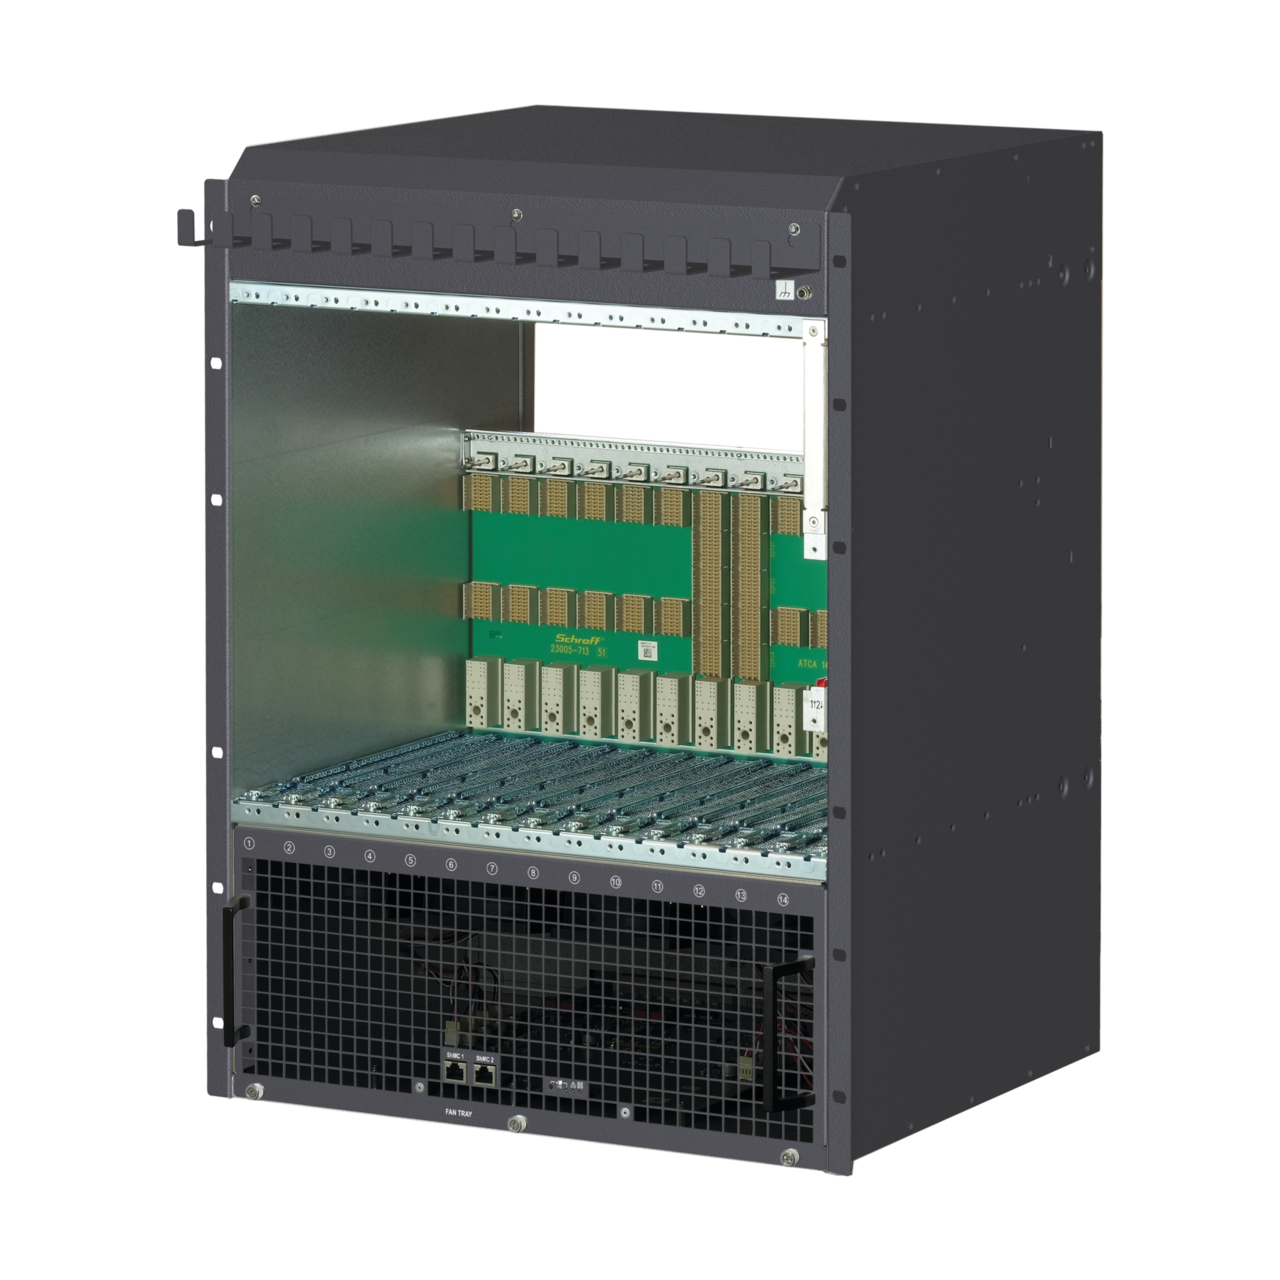 Image for AdvancedTCA ECO Modular System, 14 Slot, DC from Schroff - Asia Pacific